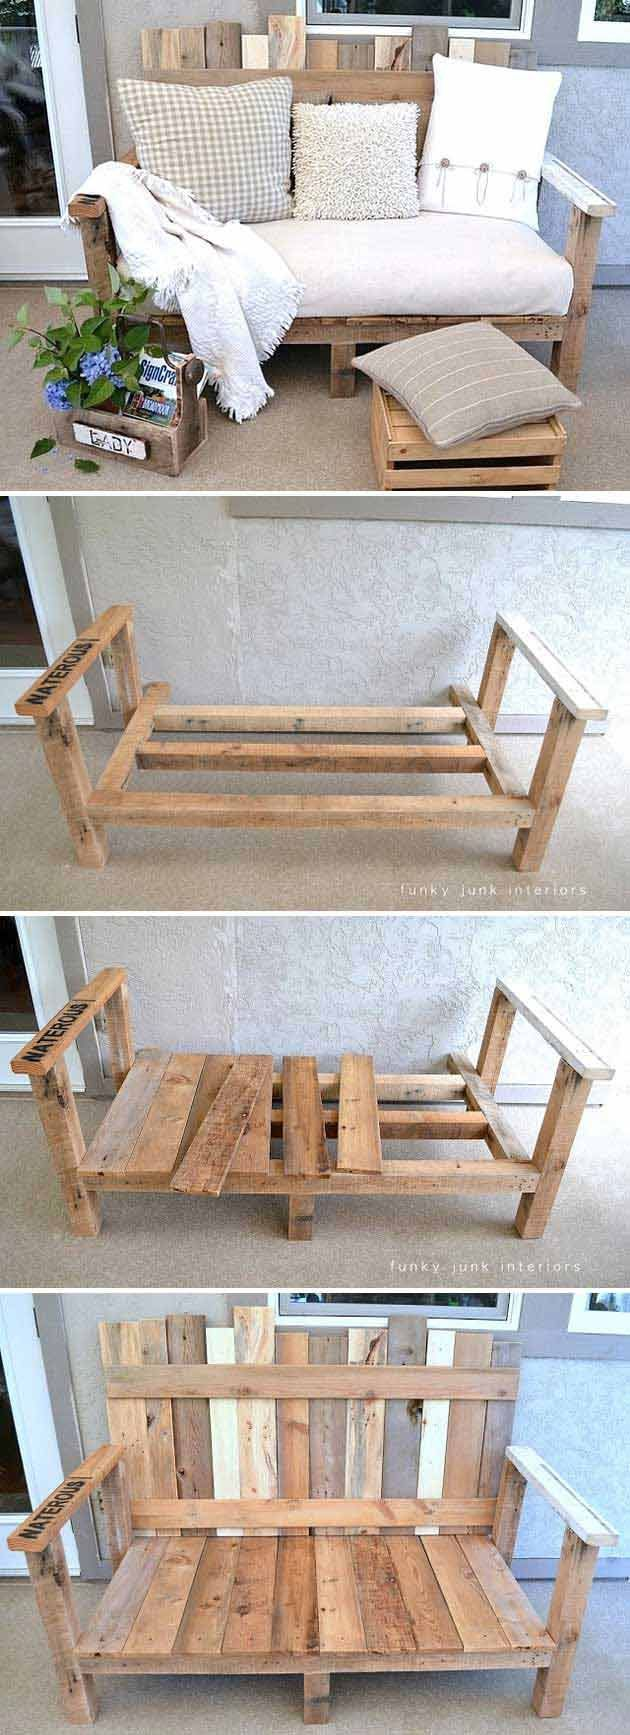 20 Insanely Cool DIY Yard and Patio Furniture – HomeDesignInspired